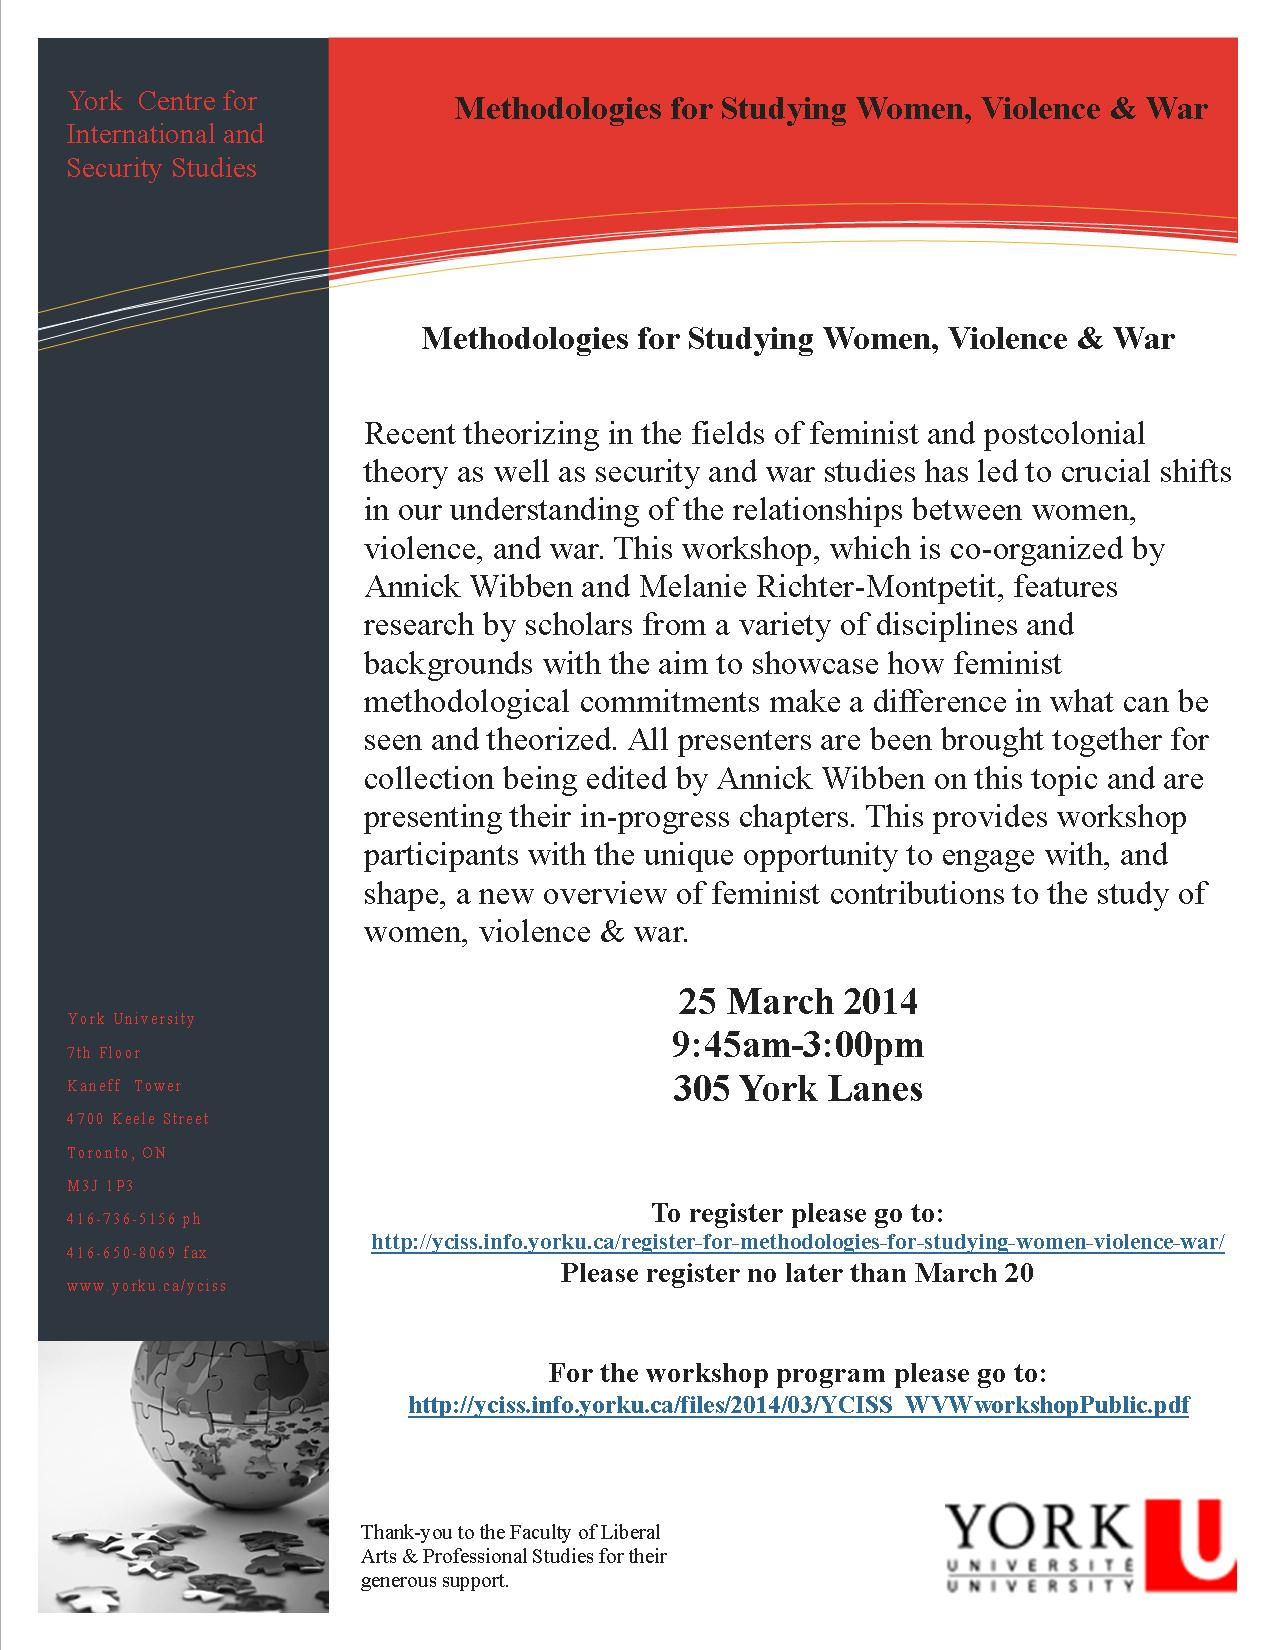 Methodologies for Studying Women, Violence & War  @ 305 York Lanes